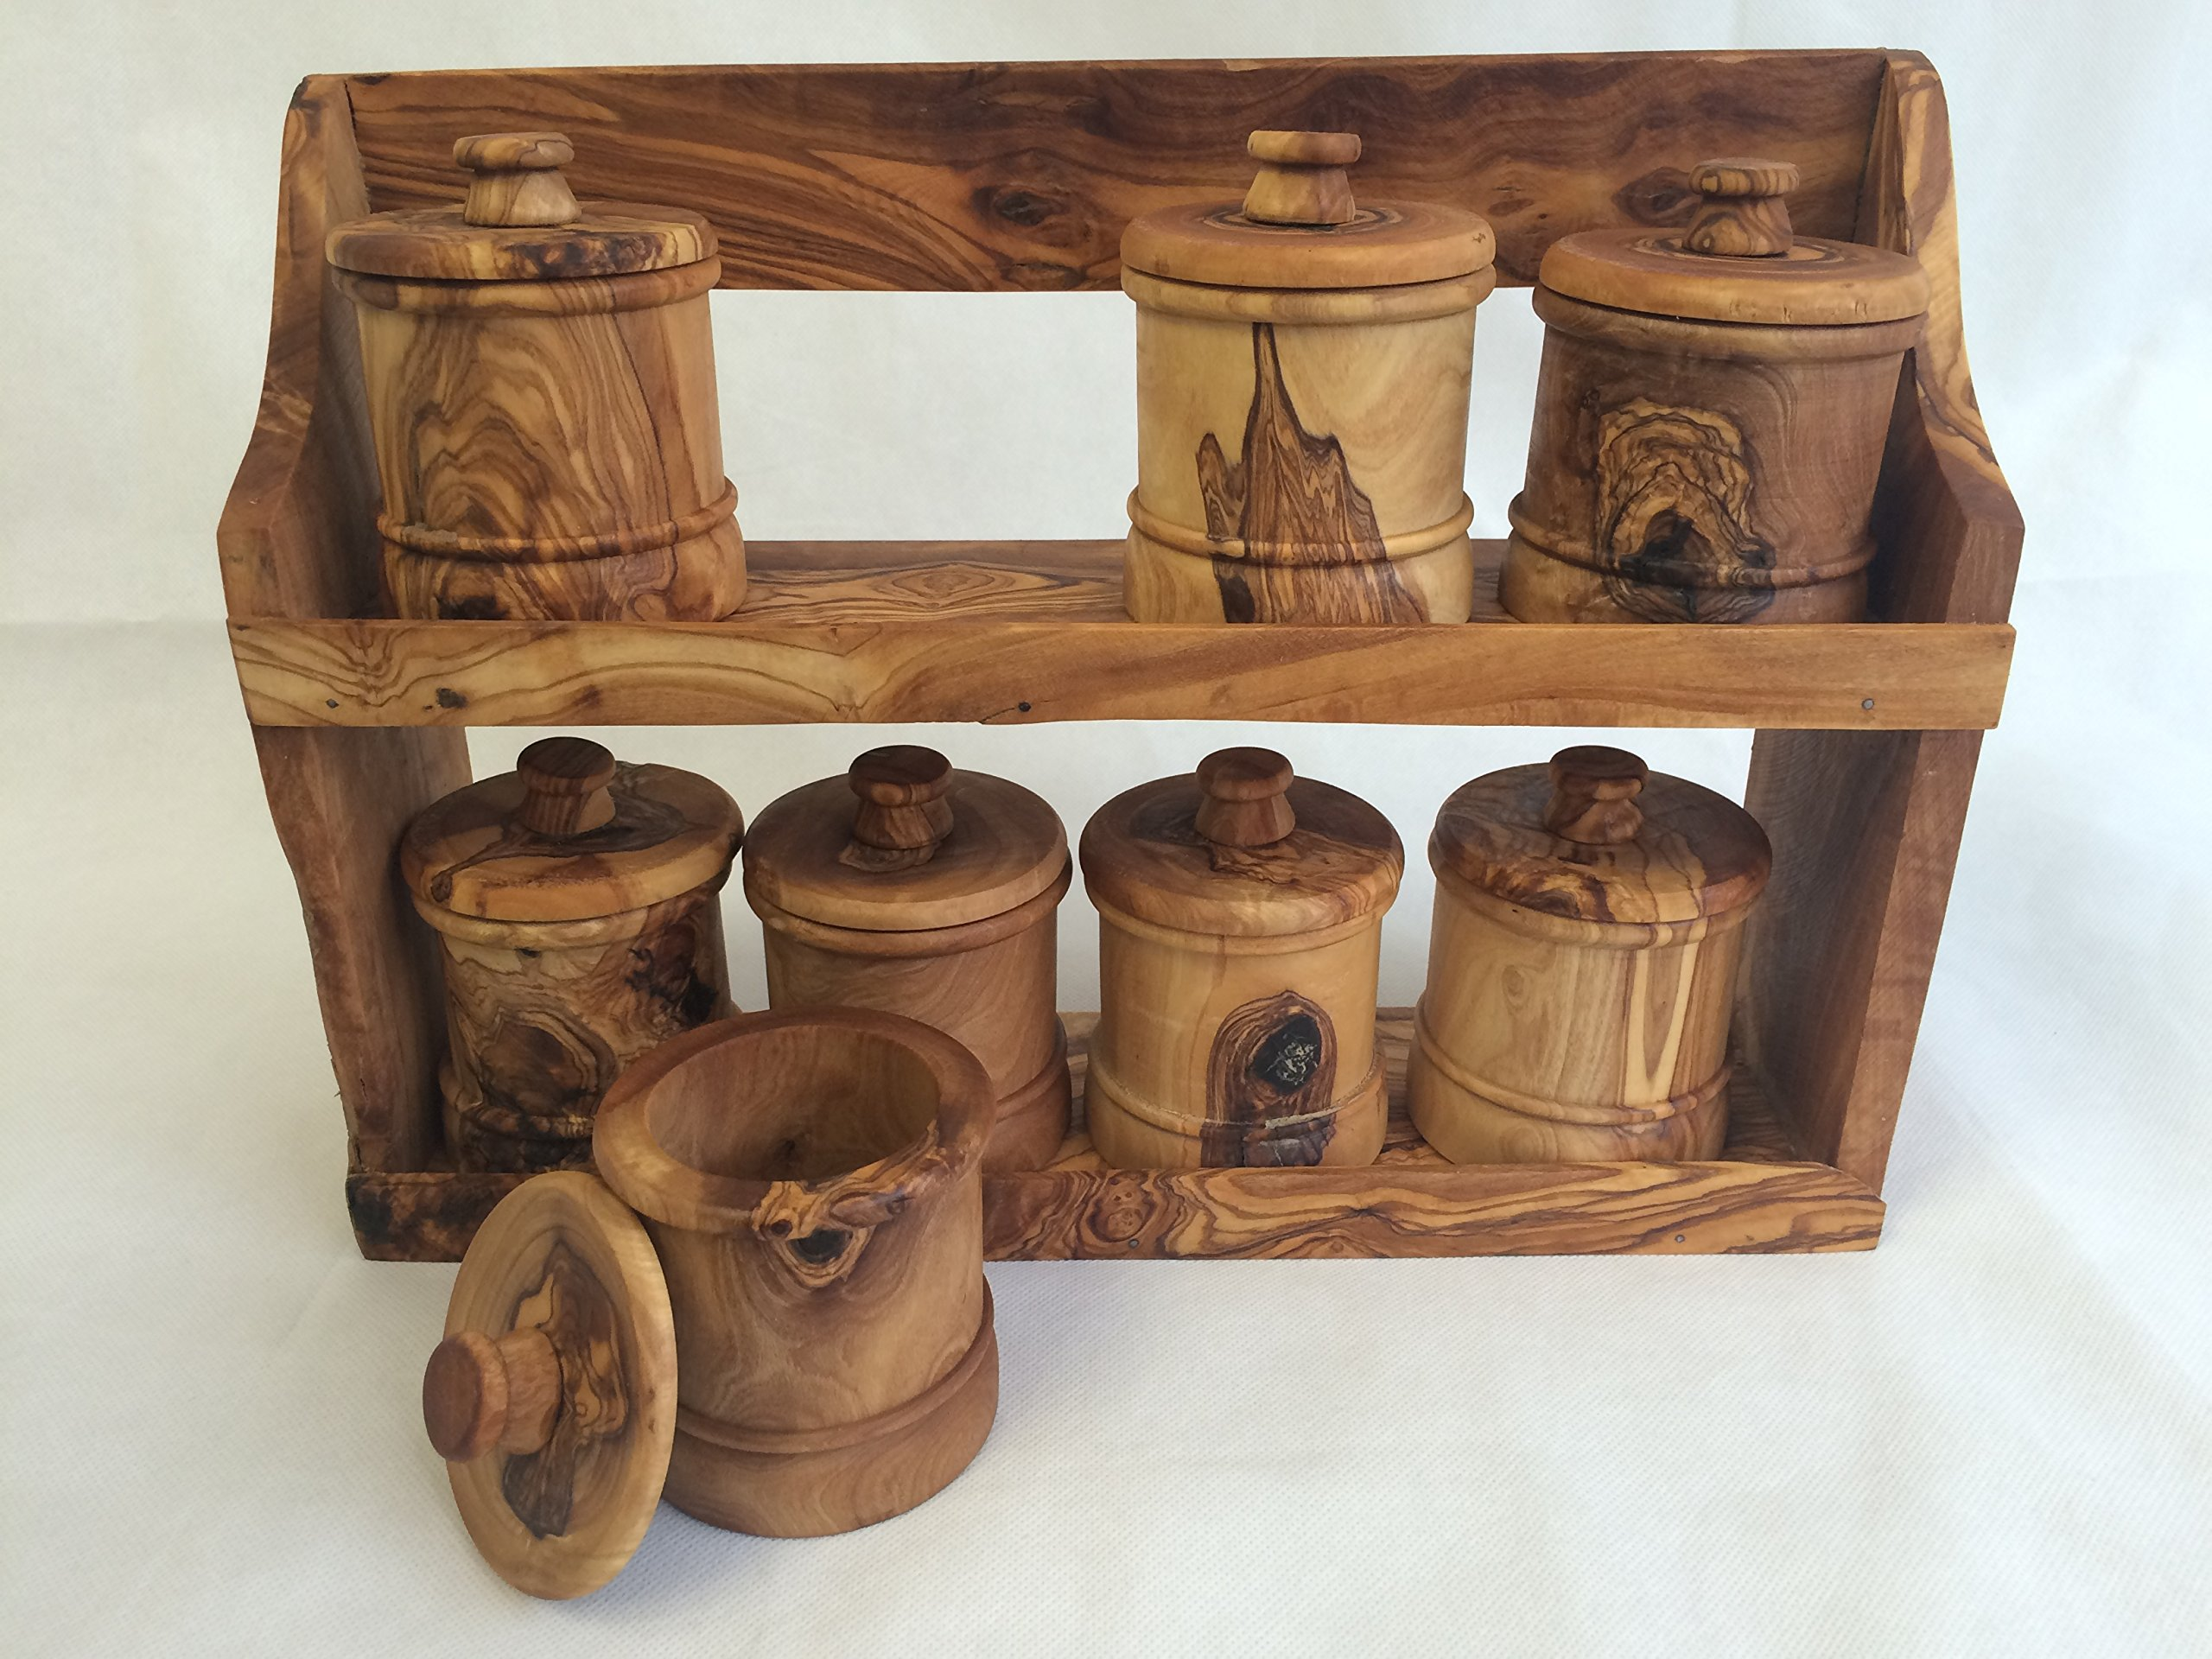 Olive Wood Spice Rack with 8 Jars by Alissar International (Image #2)